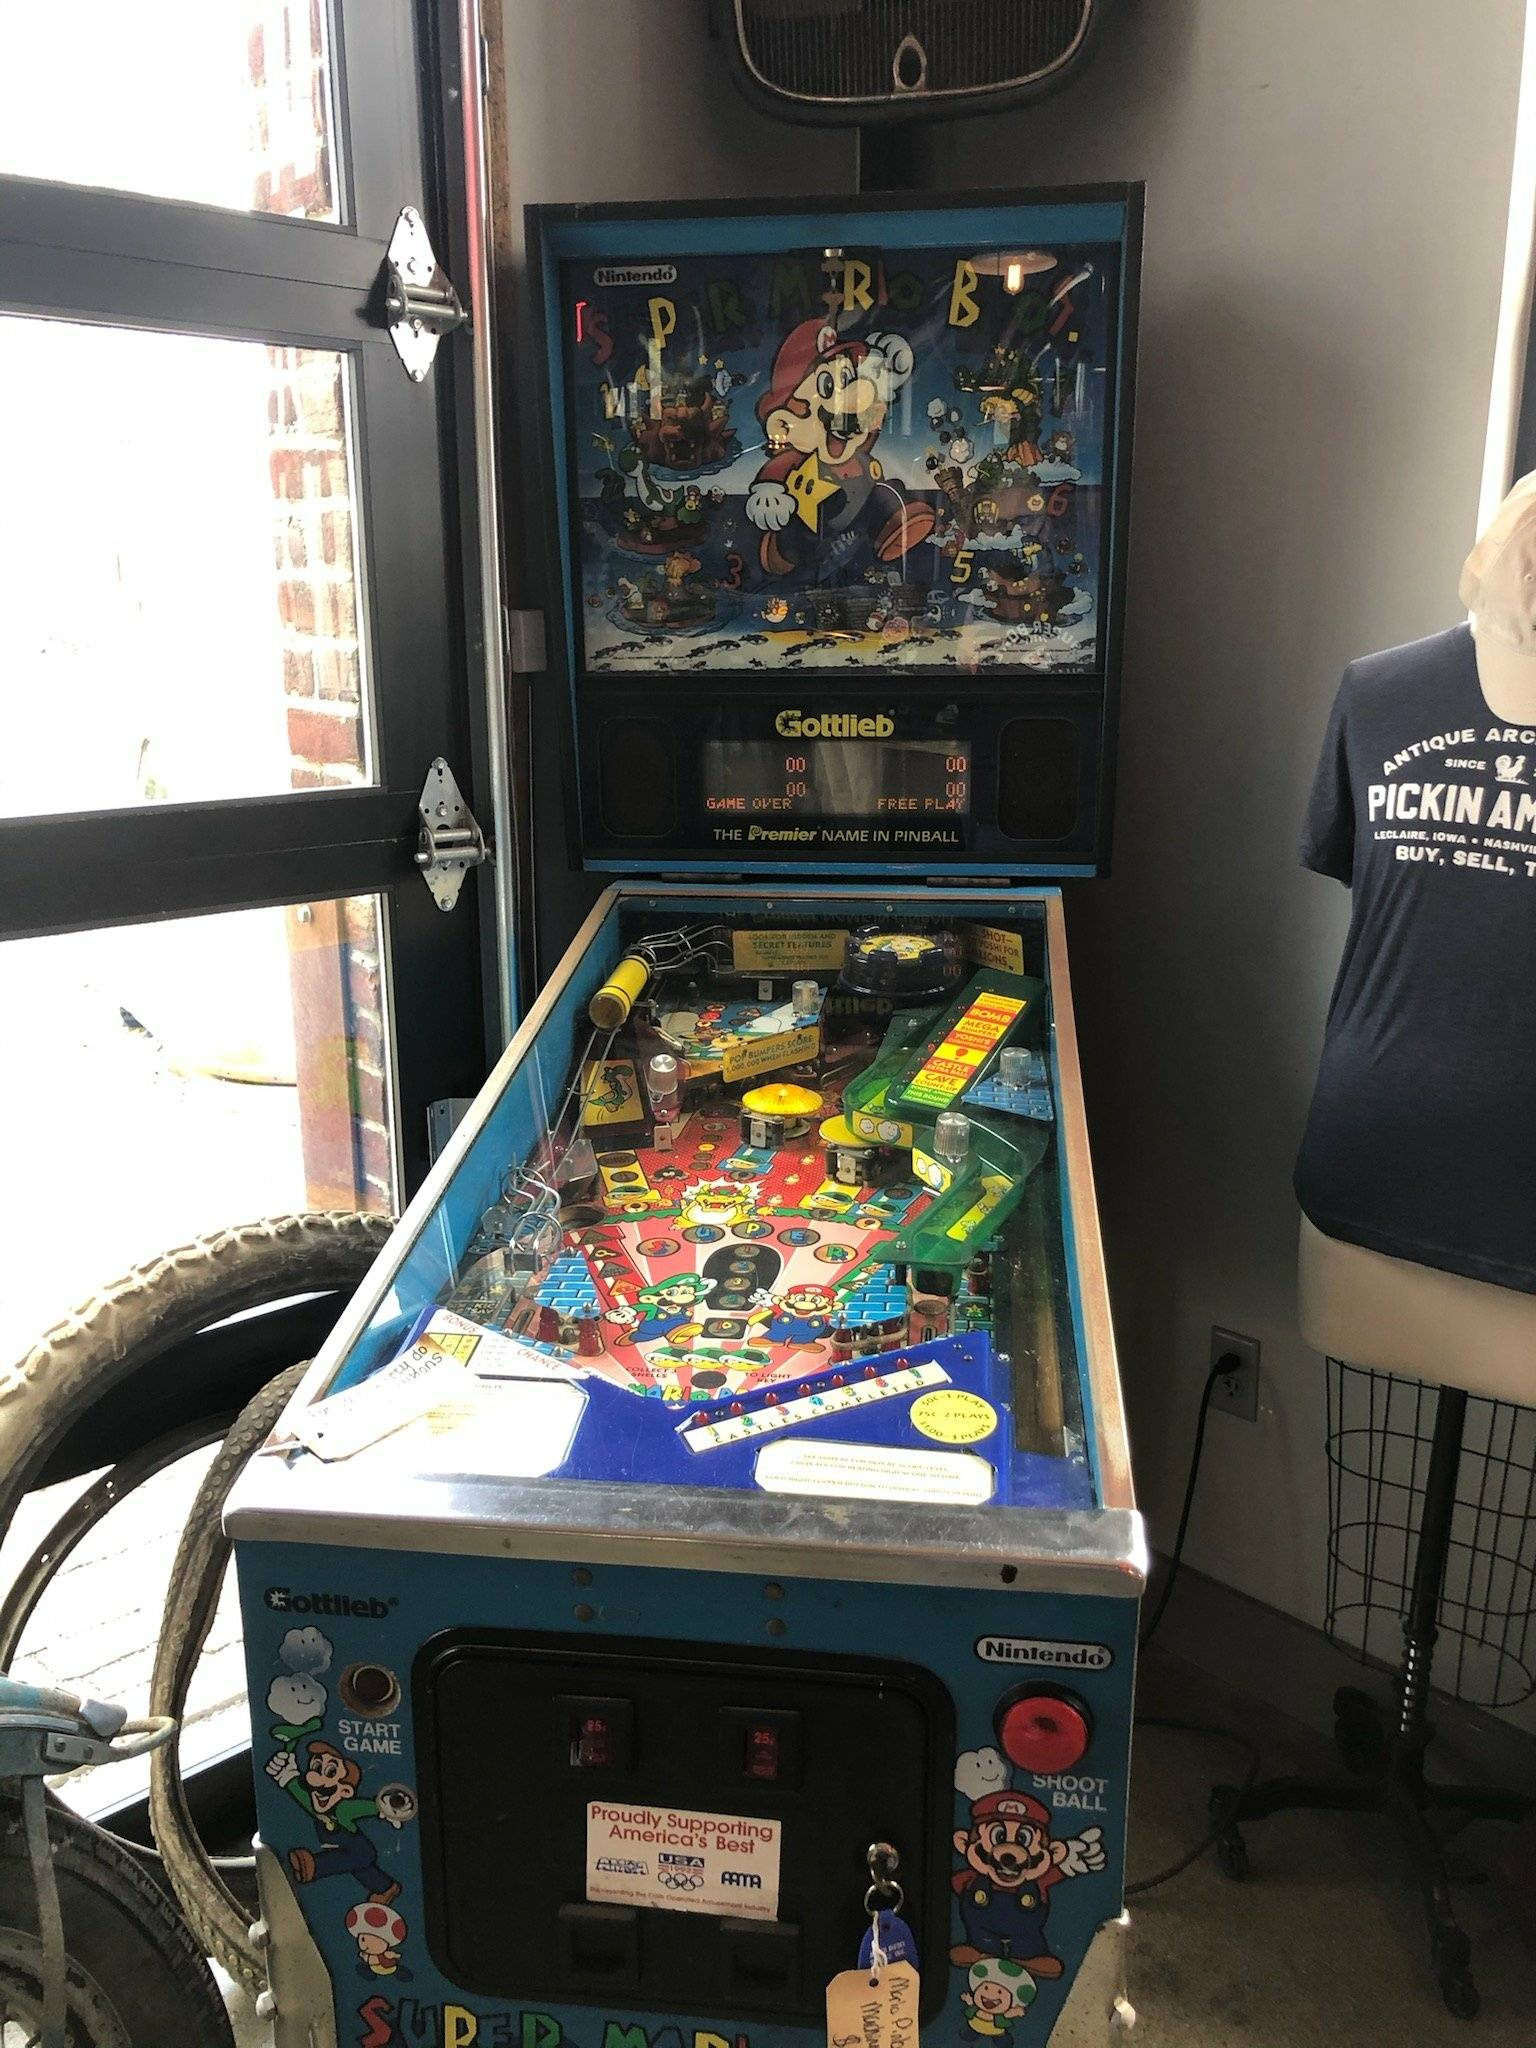 Super Mario Pinball machine with price tag cut off in photo